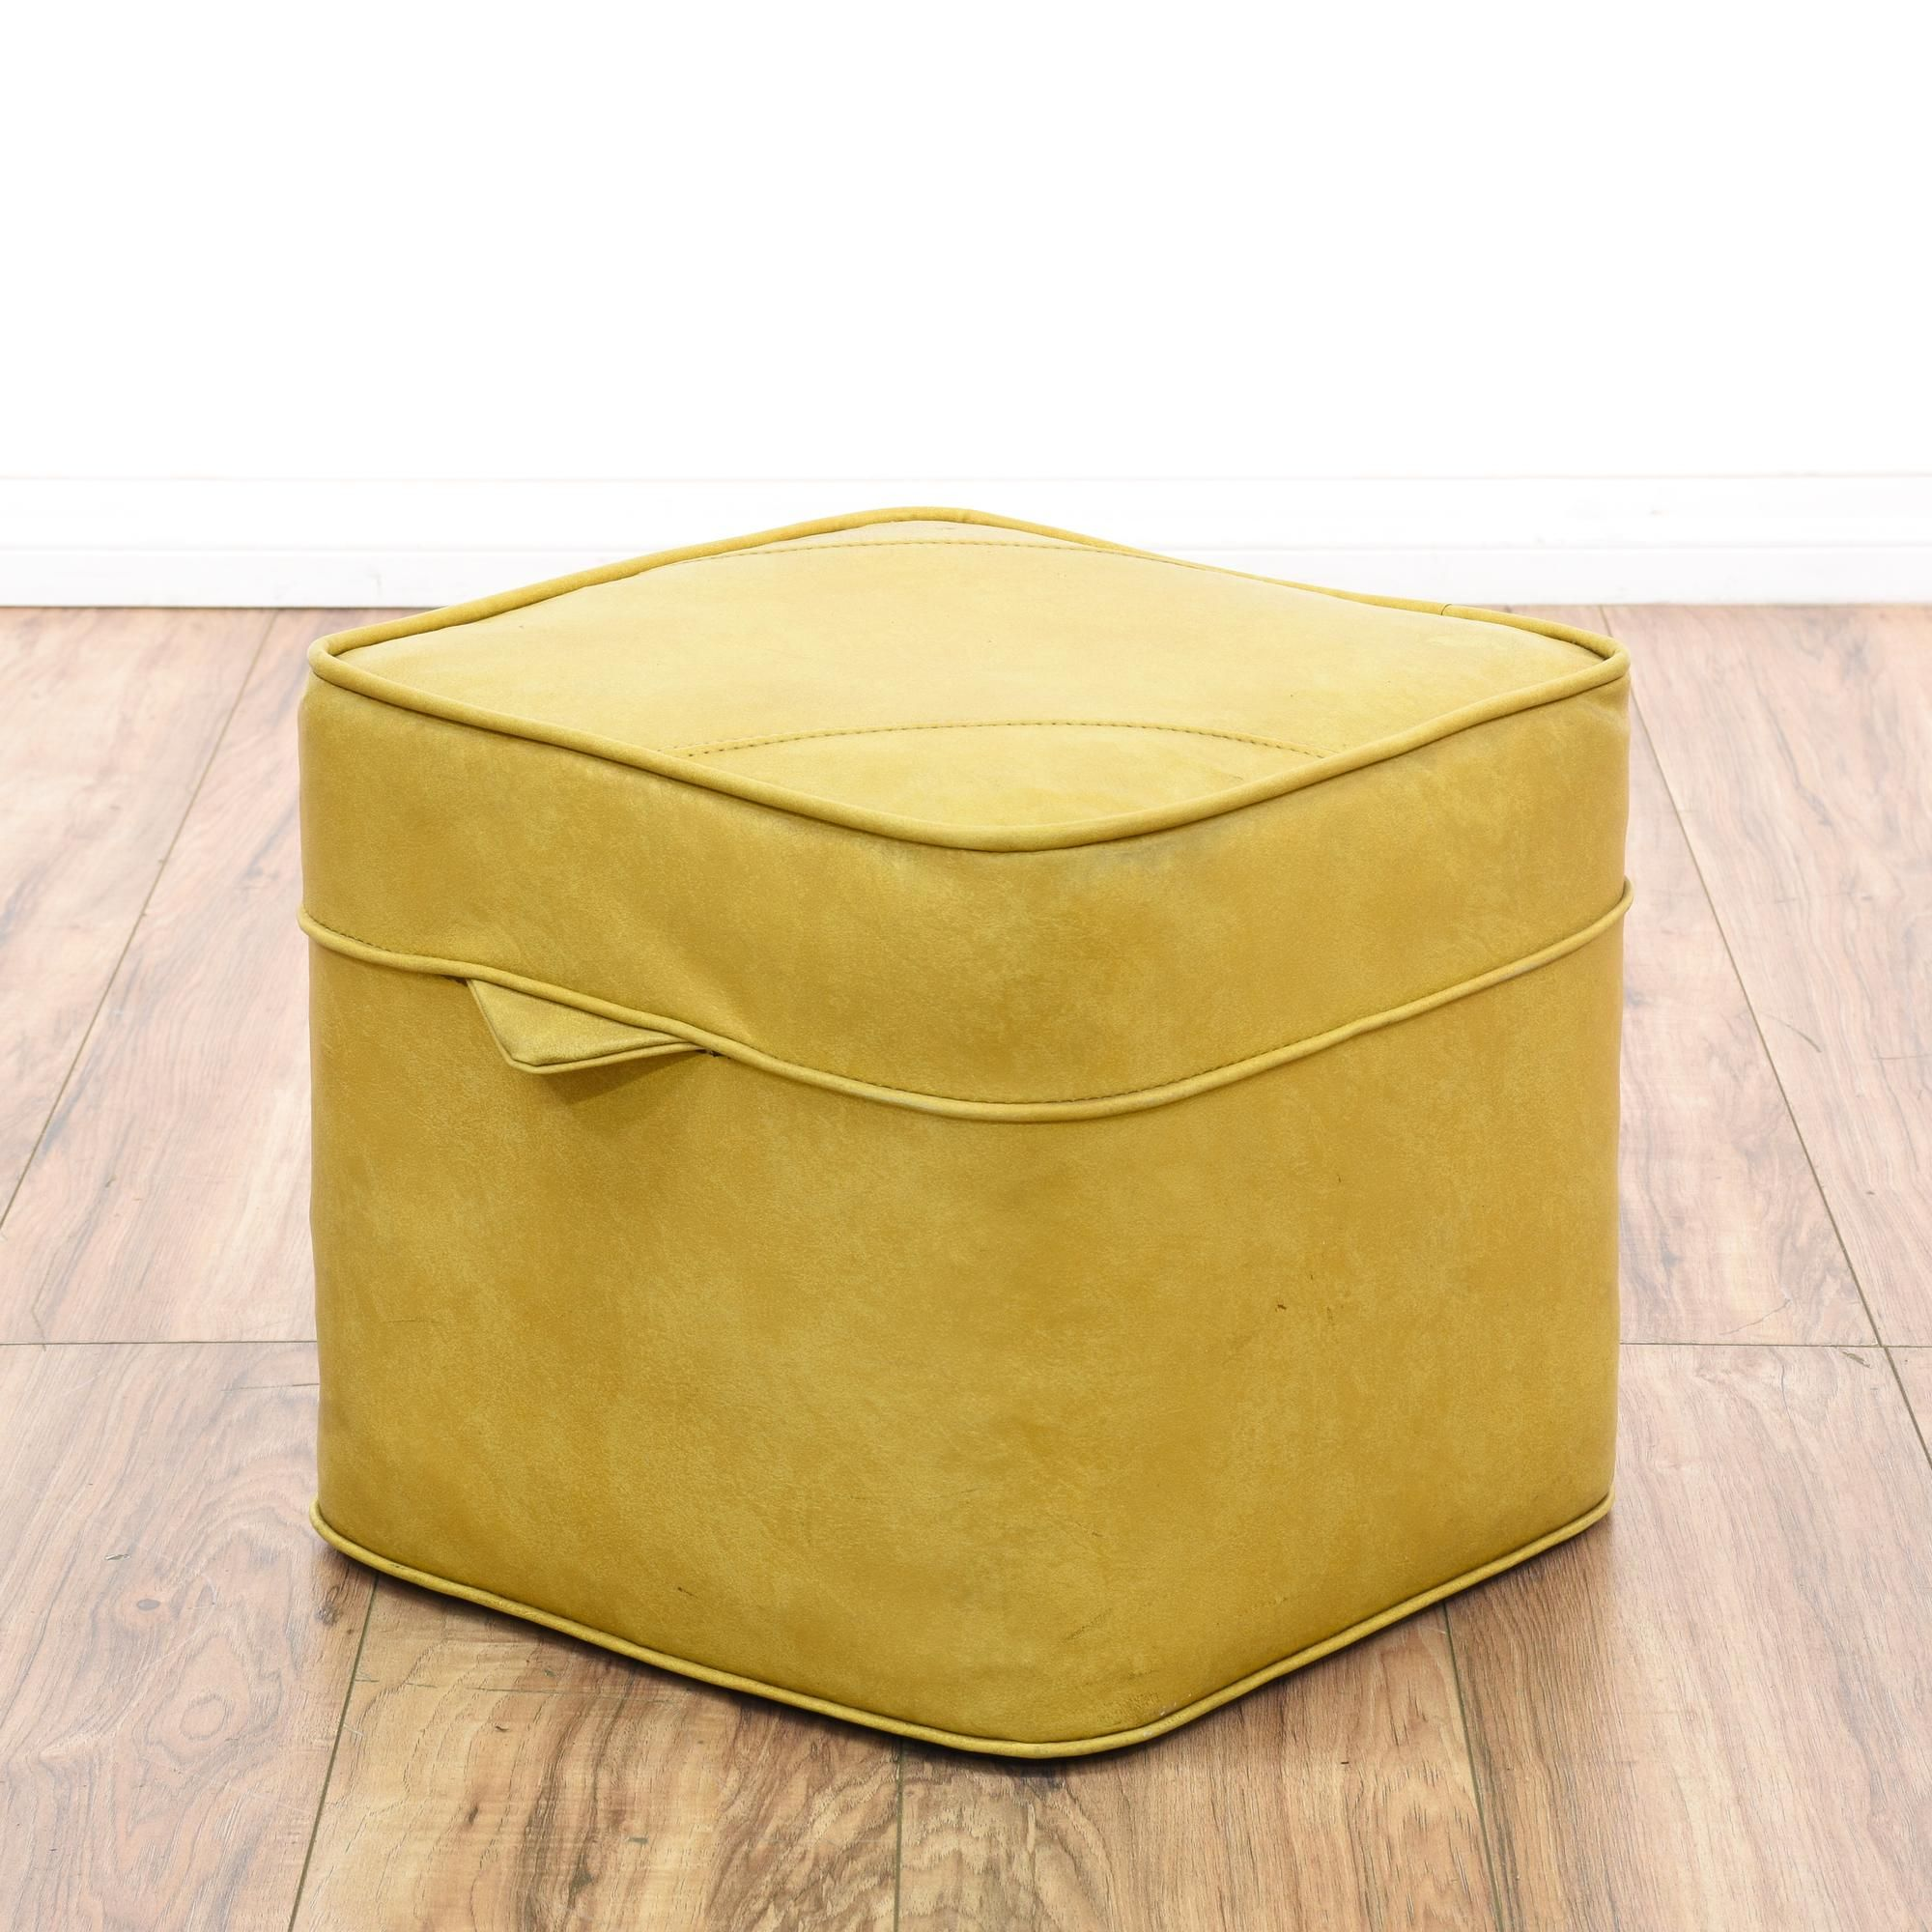 This Mid Century Modern Ottoman Is Upholstered In A Durable Vinyl With A  Glossy Mustard Yellow Finish. This Hassock Footstool Has A Cushion Top With  Curved ...